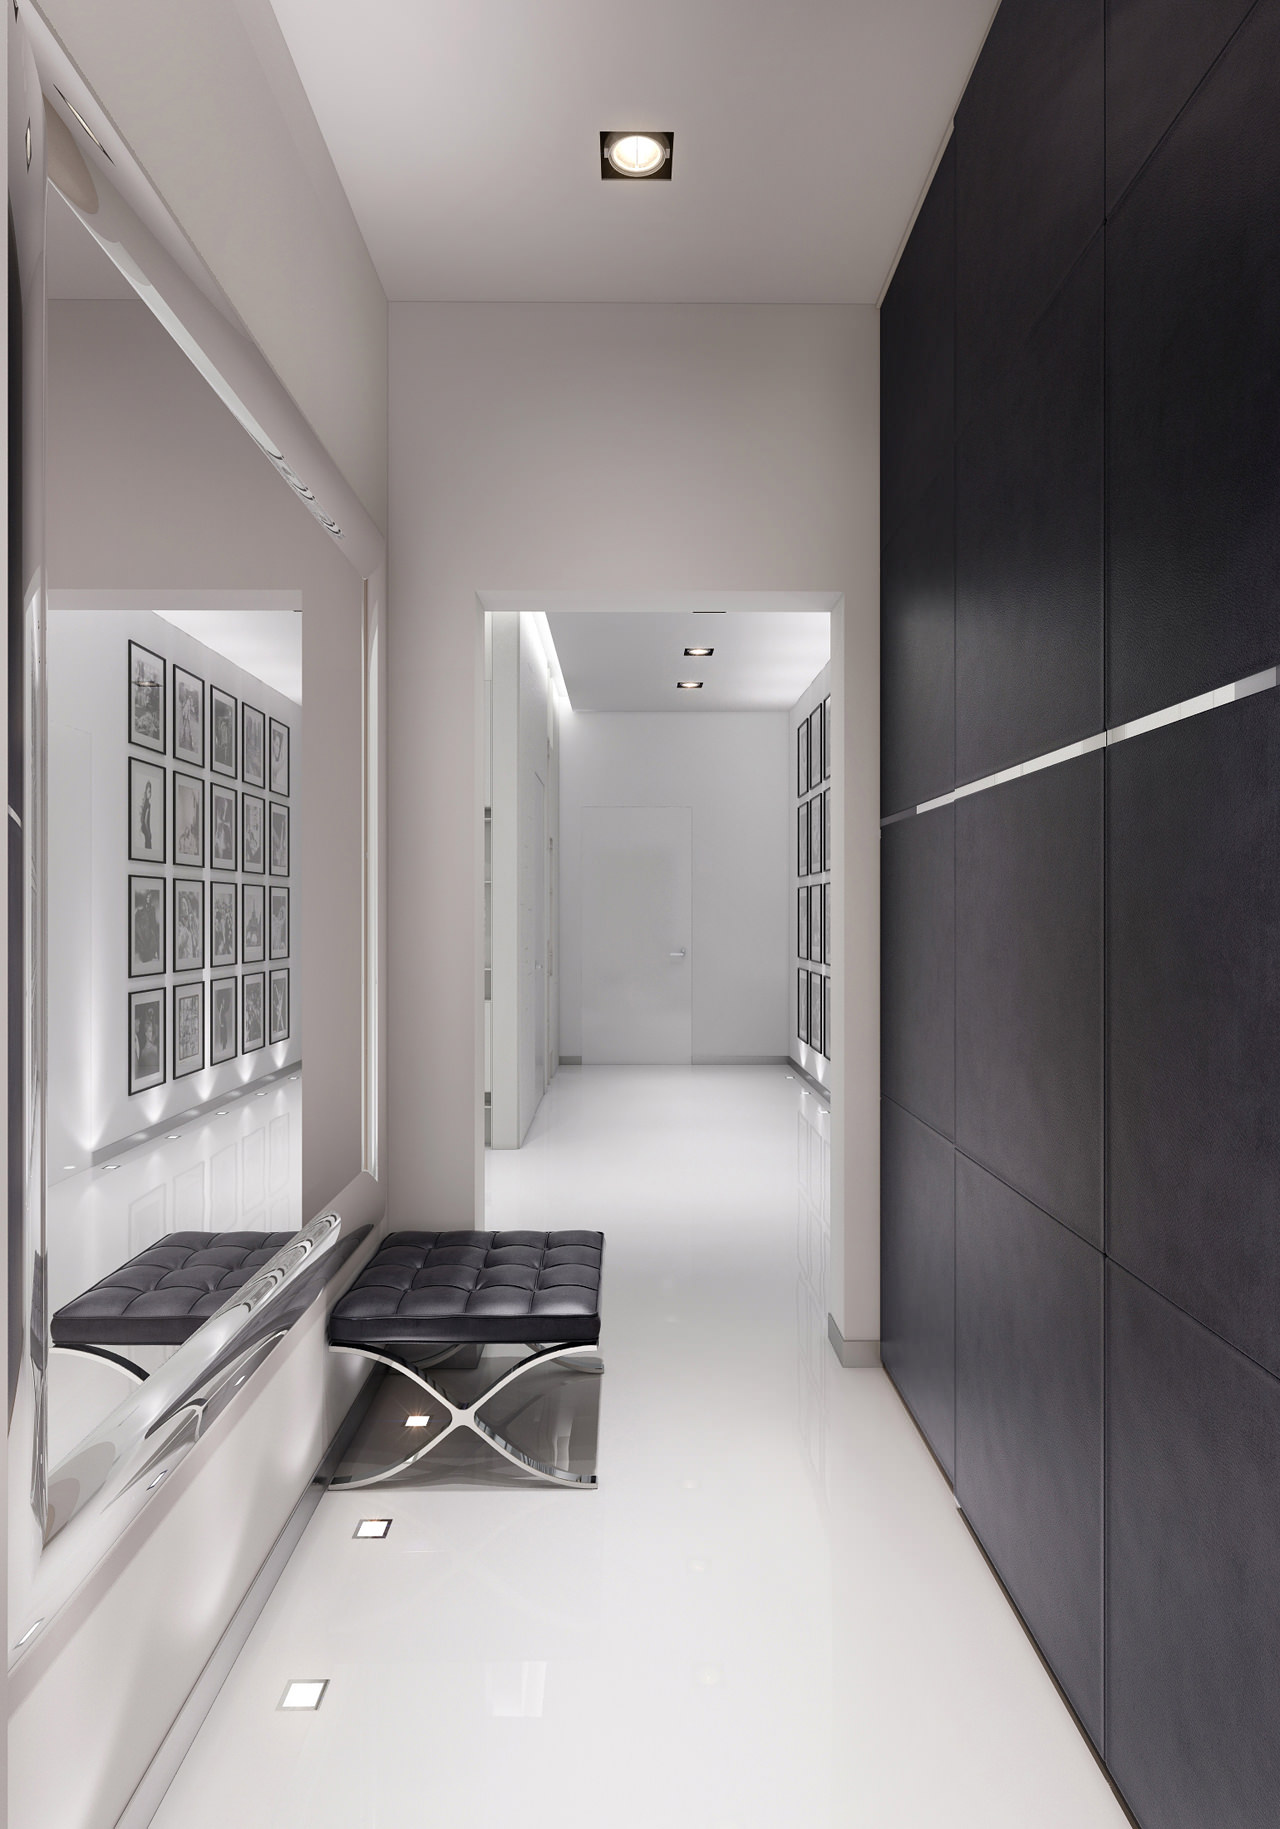 https://cdn.architecturendesign.net/wp-content/uploads/2014/07/15-Modern-hallway.jpg